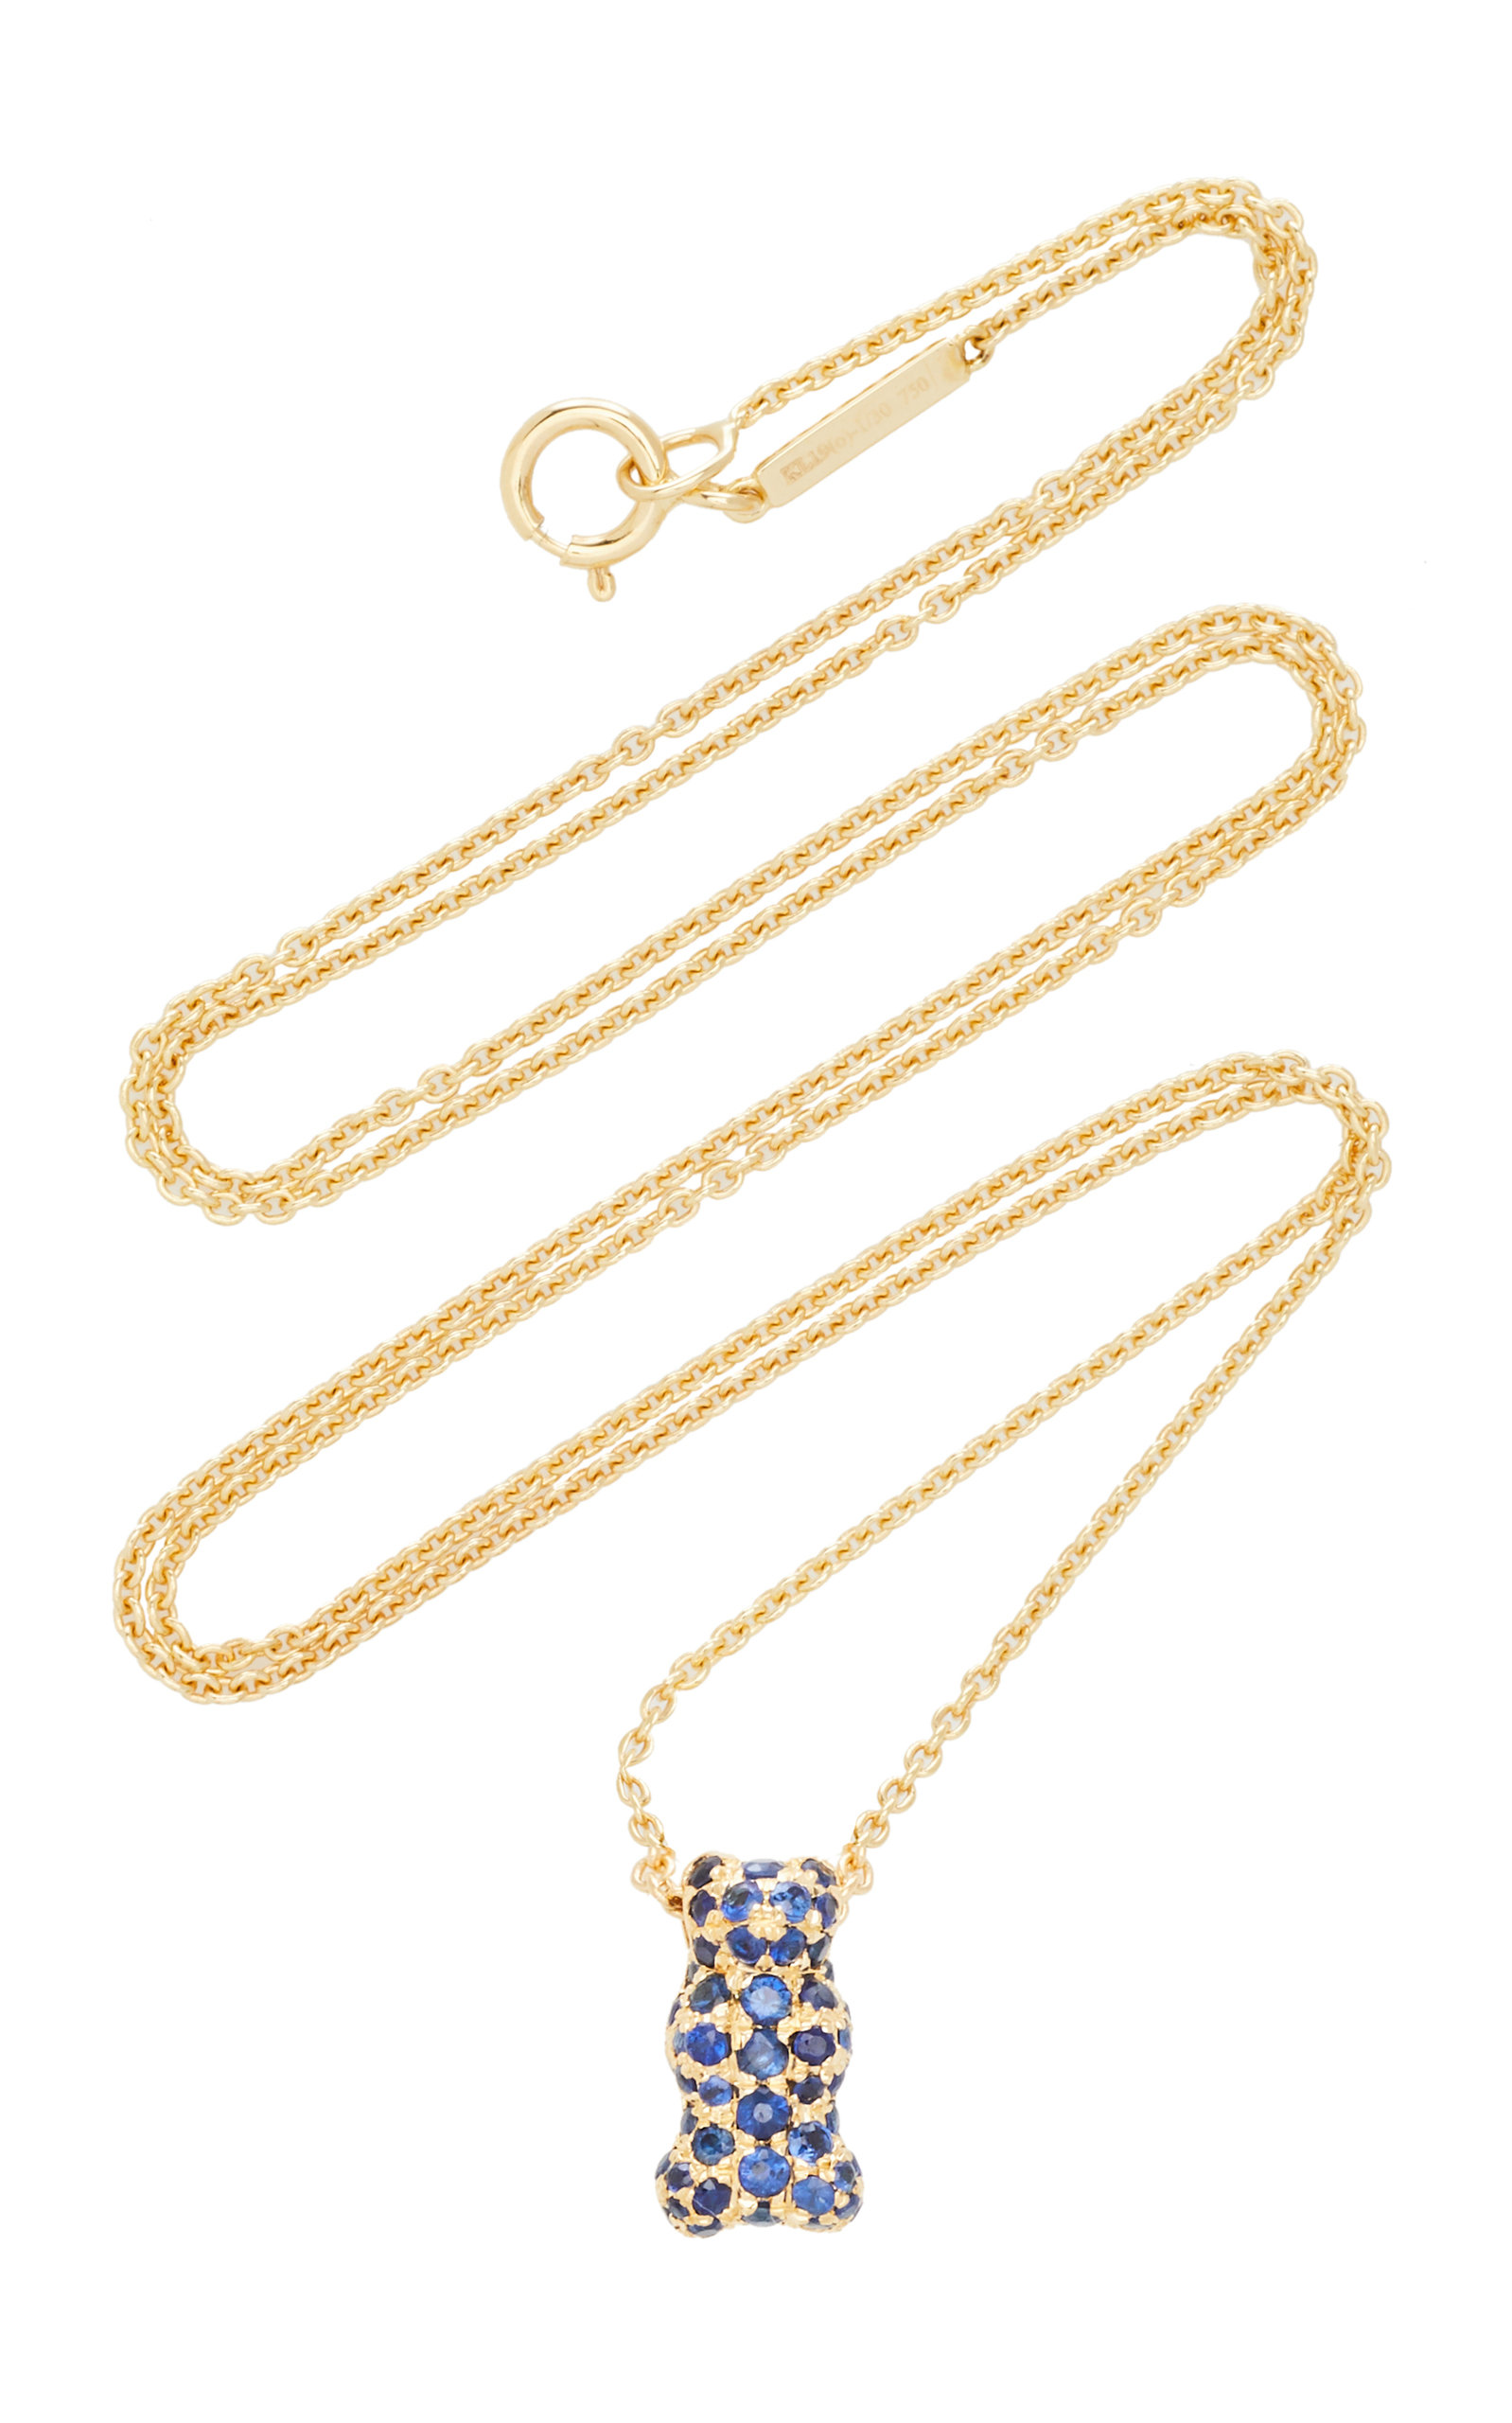 Women's 18K Yellow-Gold and Blue Sapphire Gummy Bear Necklace